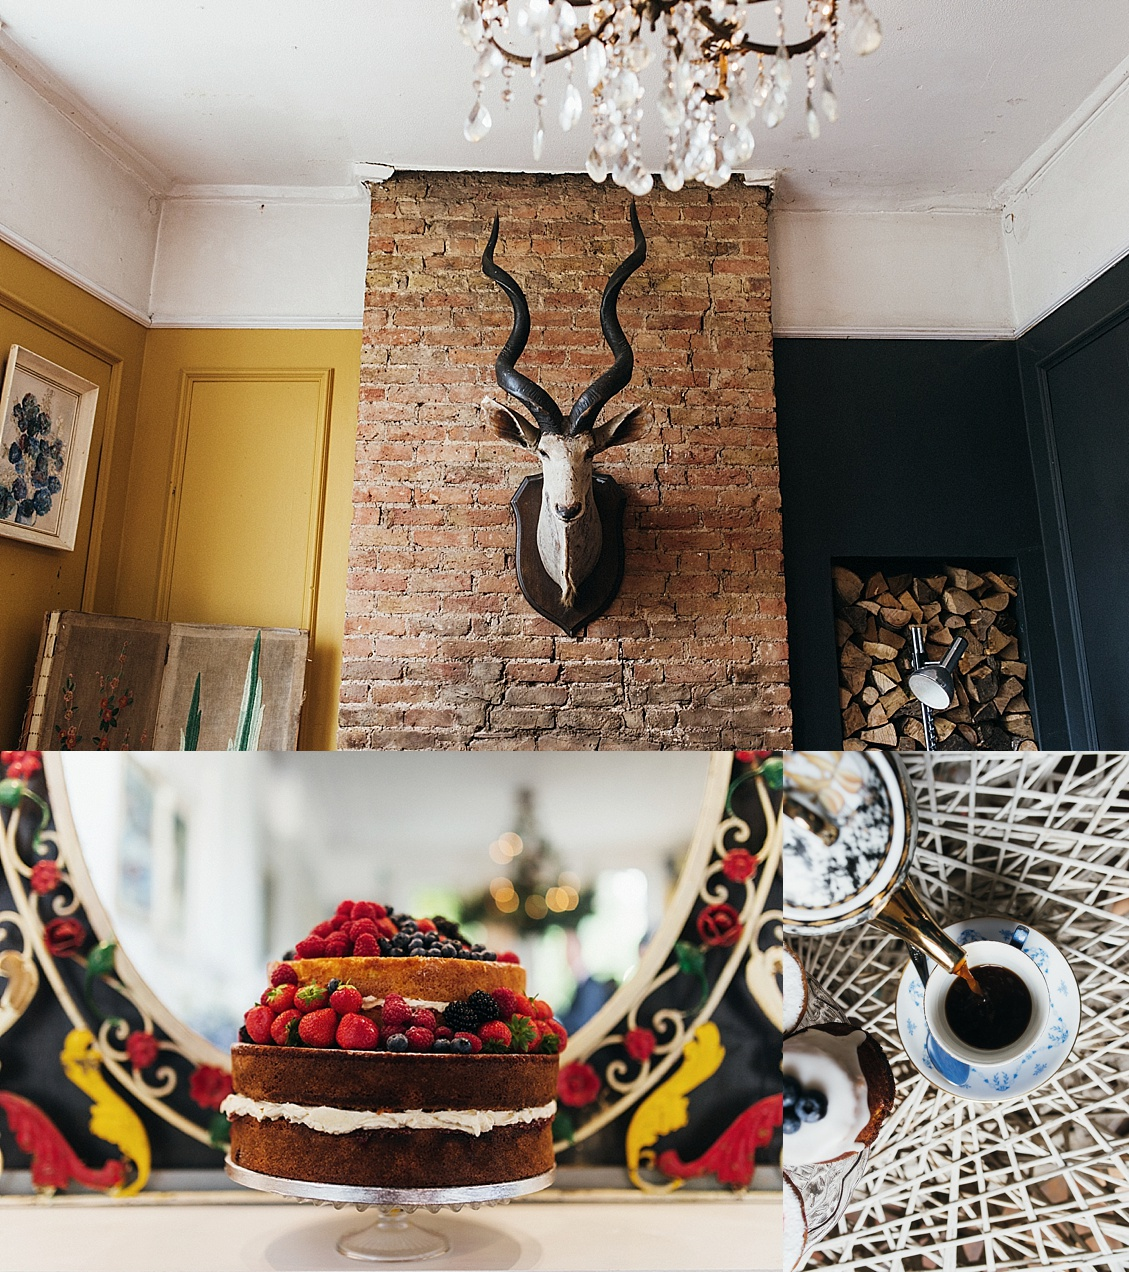 Stag head mounted at the Roost, naked wedding cake with strawberries - gay wedding The Roost Dalston wedding - quirky London wedding photographer © Babb Photo